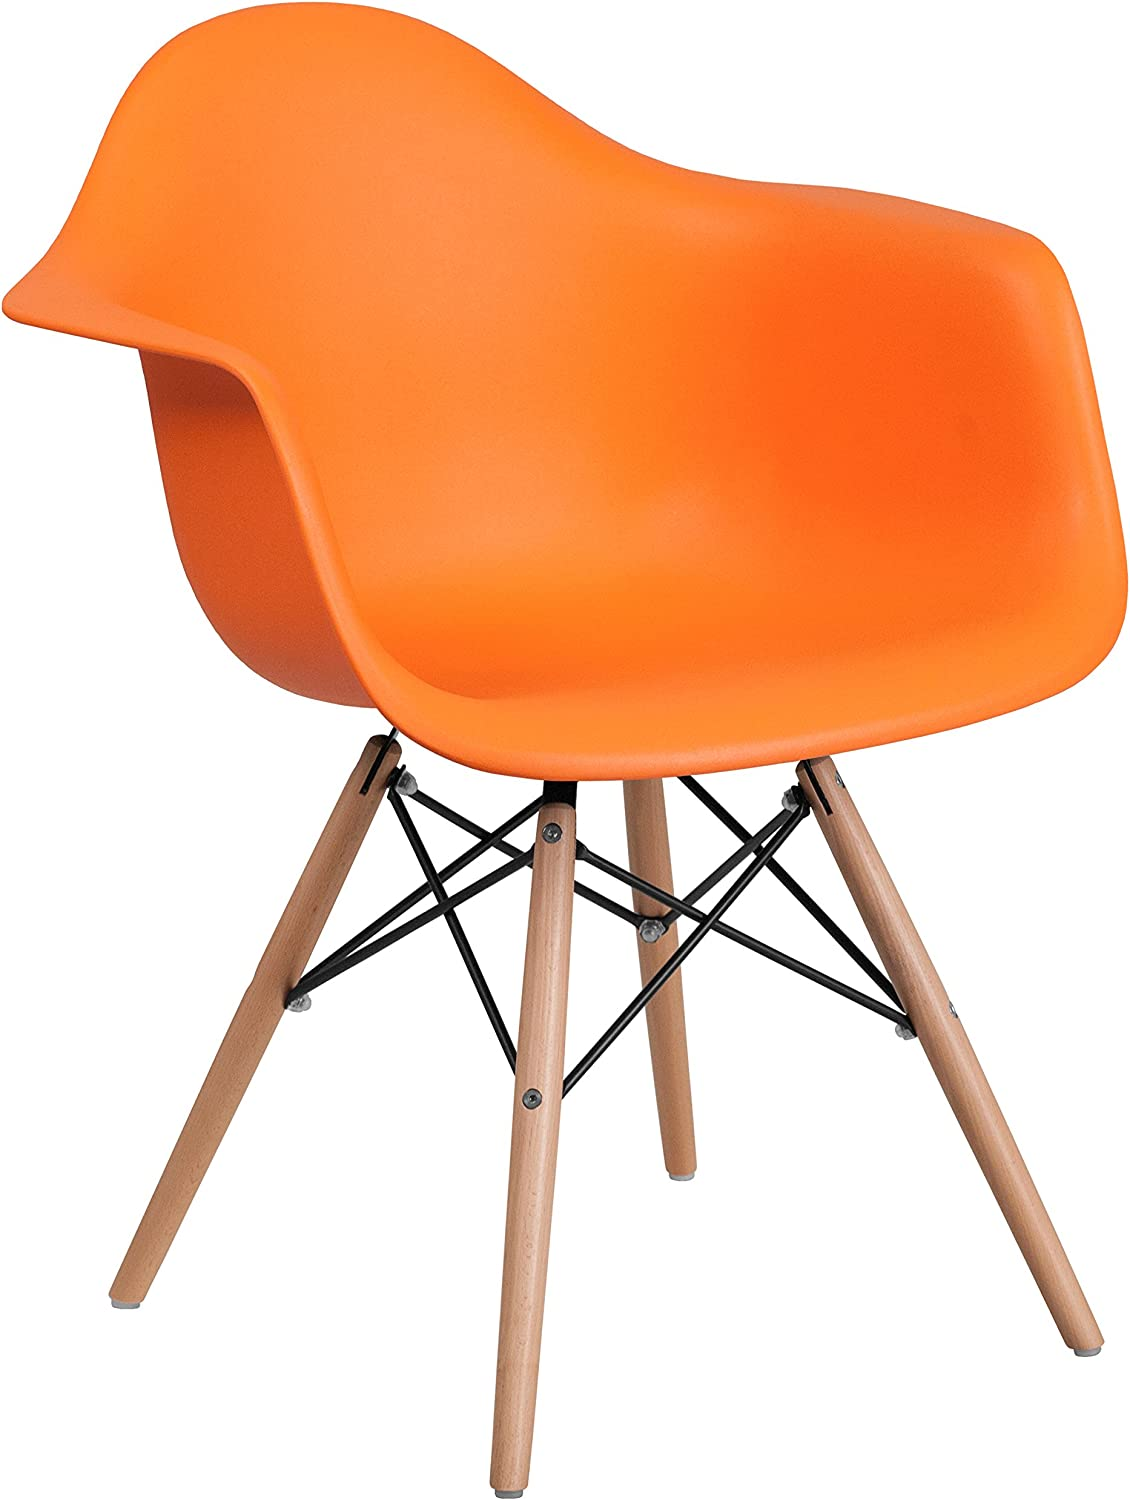 Flash Furniture Alonza Series Orange Plastic Chair with Wooden Legs